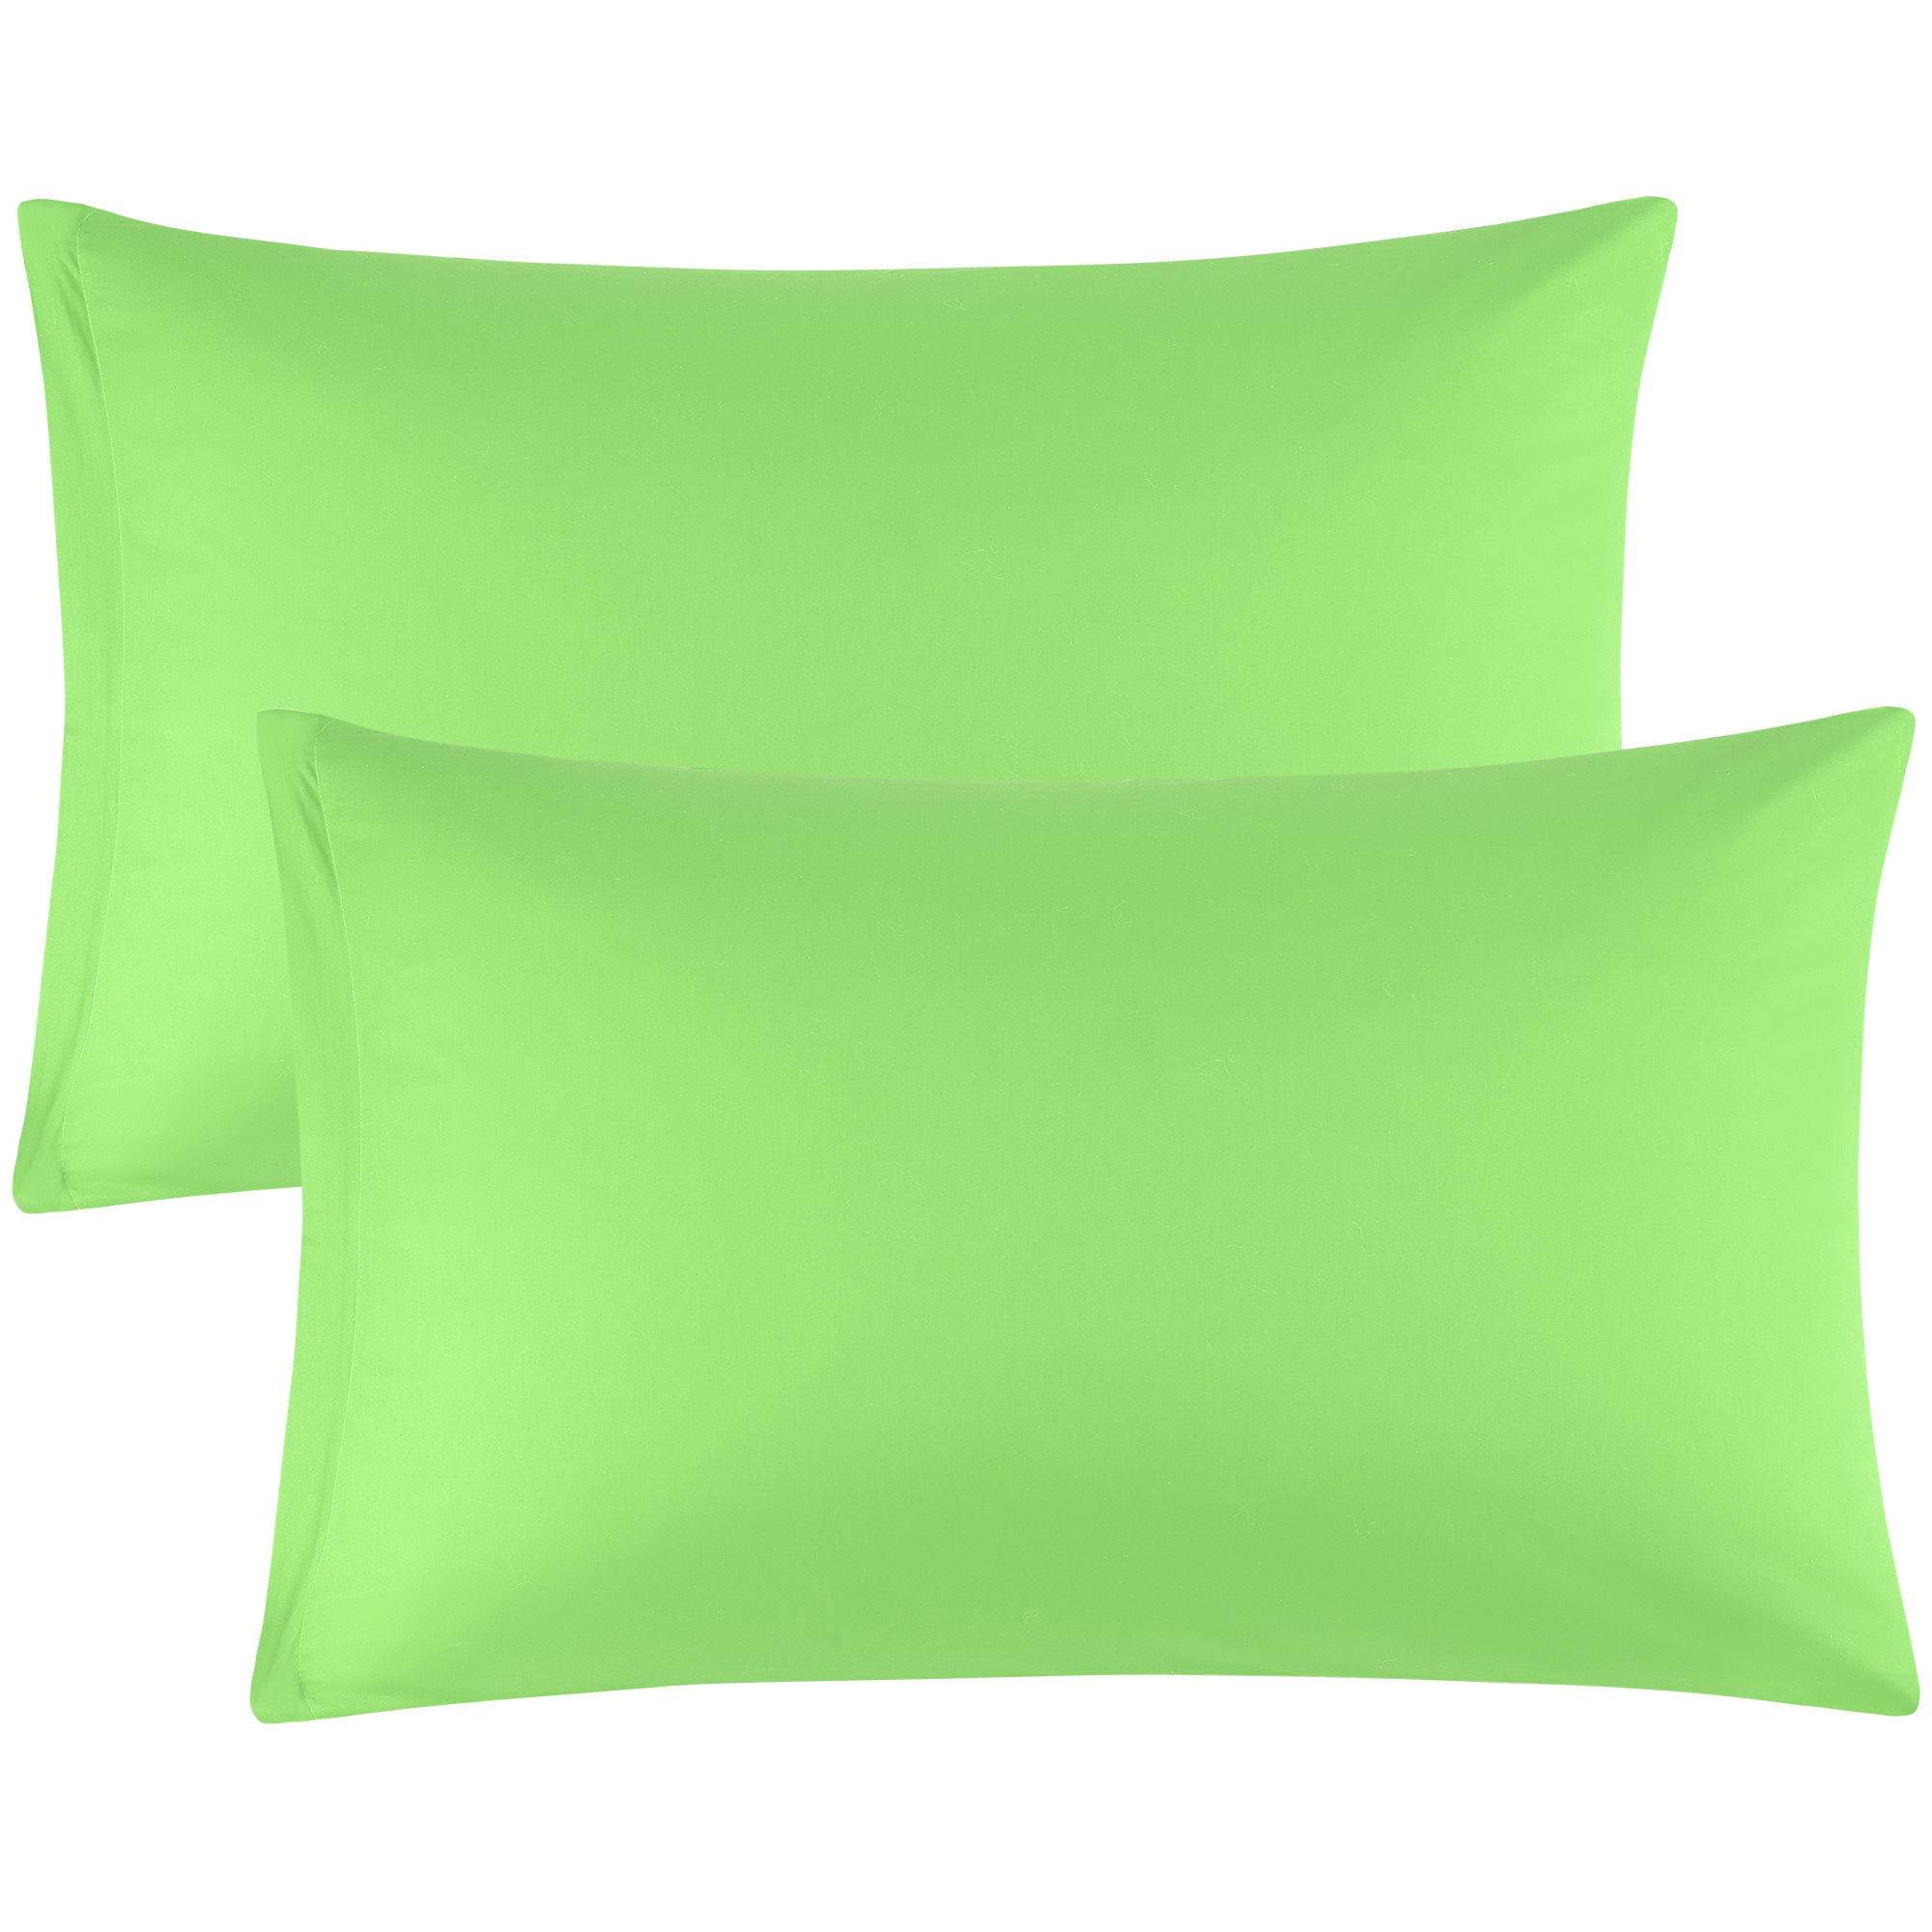 Zippered Pillow Cases Pillowcases Egyptian Cotton 2-Pack (20 x 30 Inch, Green)